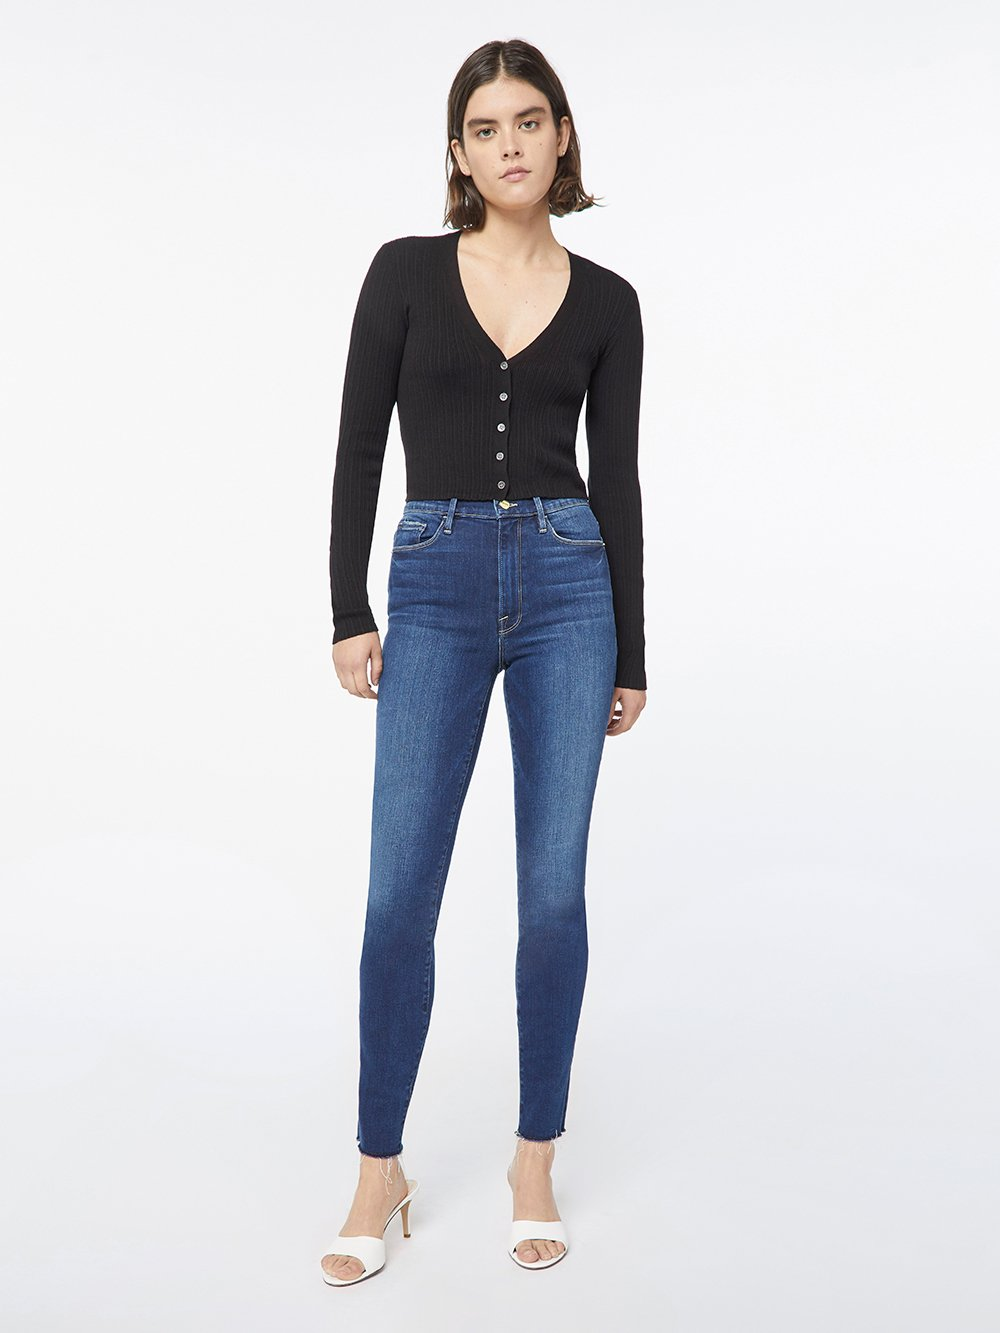 Mixed Rib Cardi in Noir by Frame, available on frame-store.com for $147 Kaia Gerber Top Exact Product